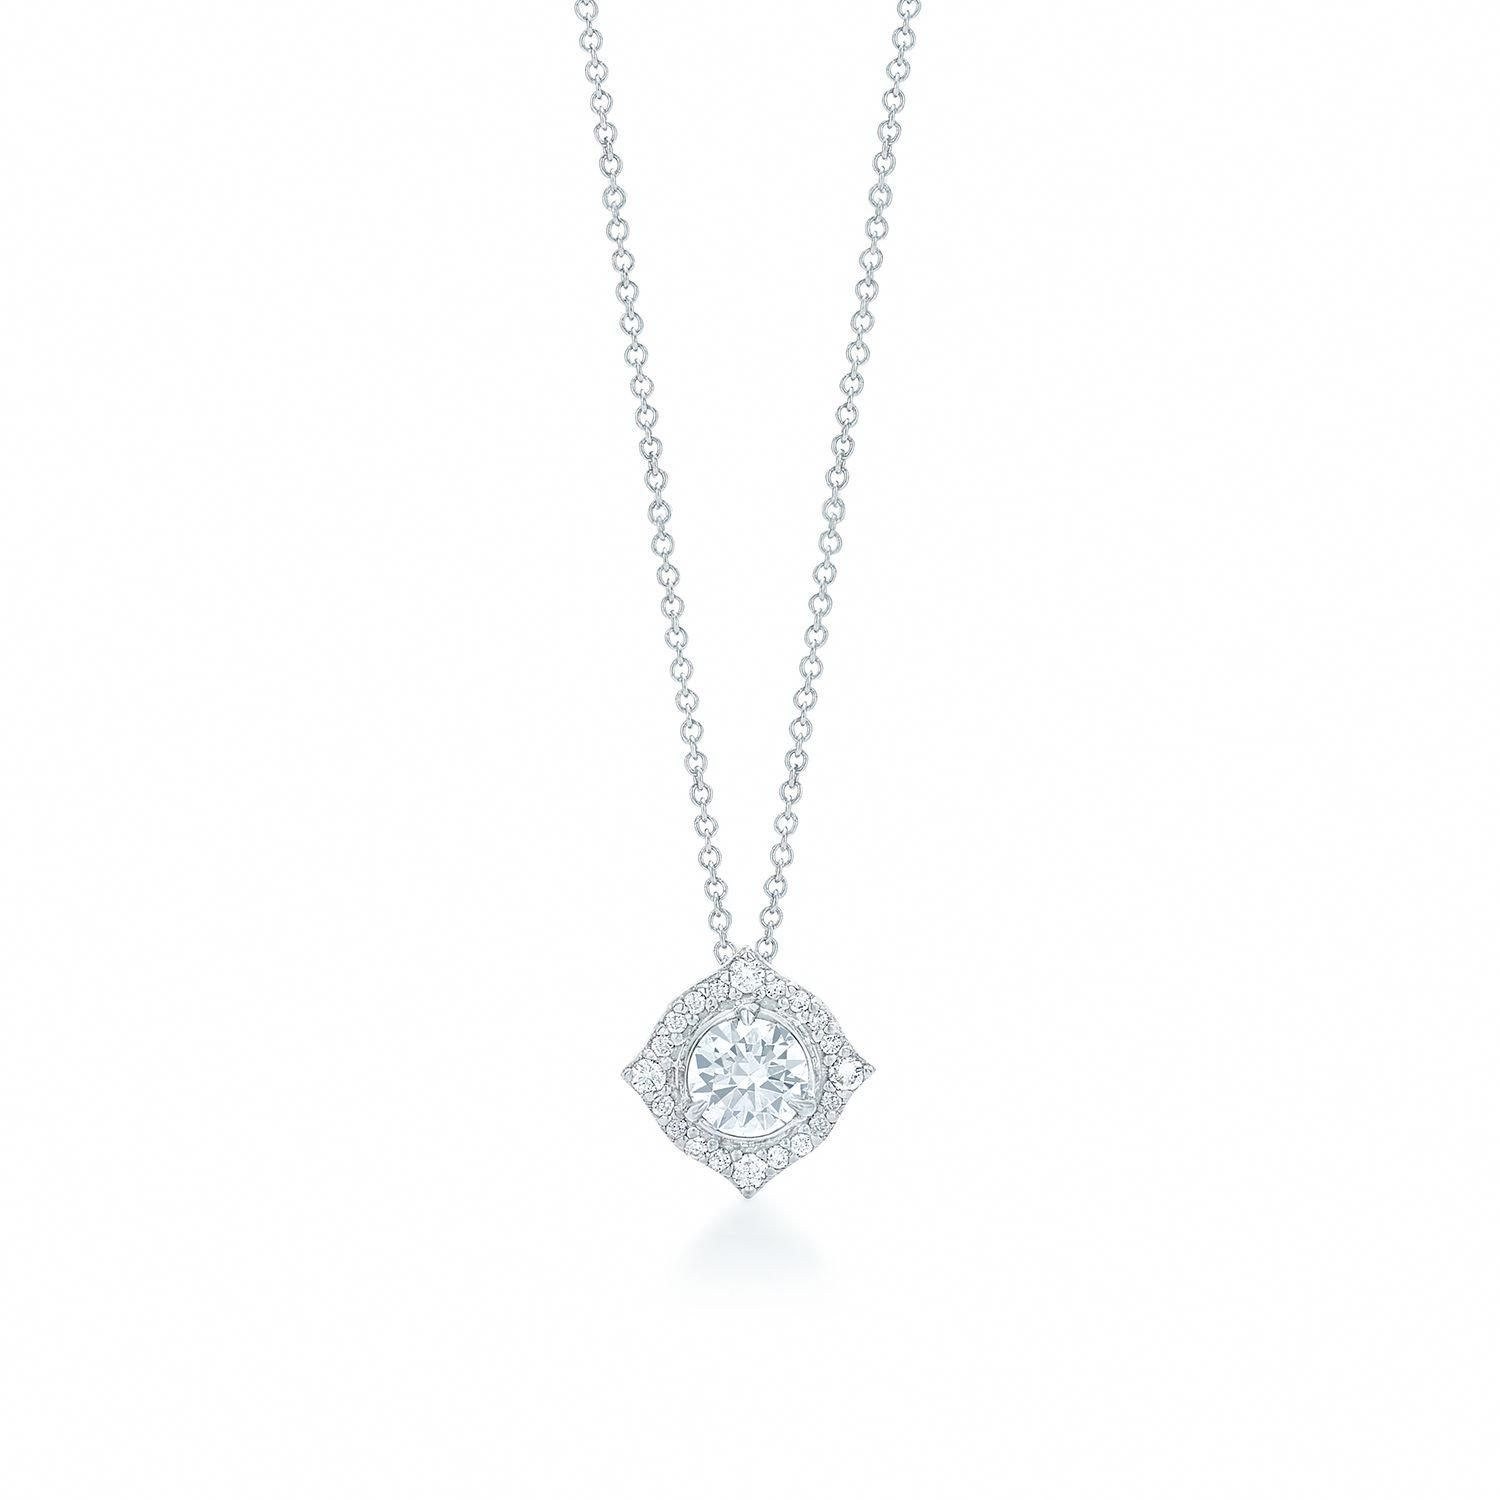 White gold pendant kwiat splendor collection style w diamond